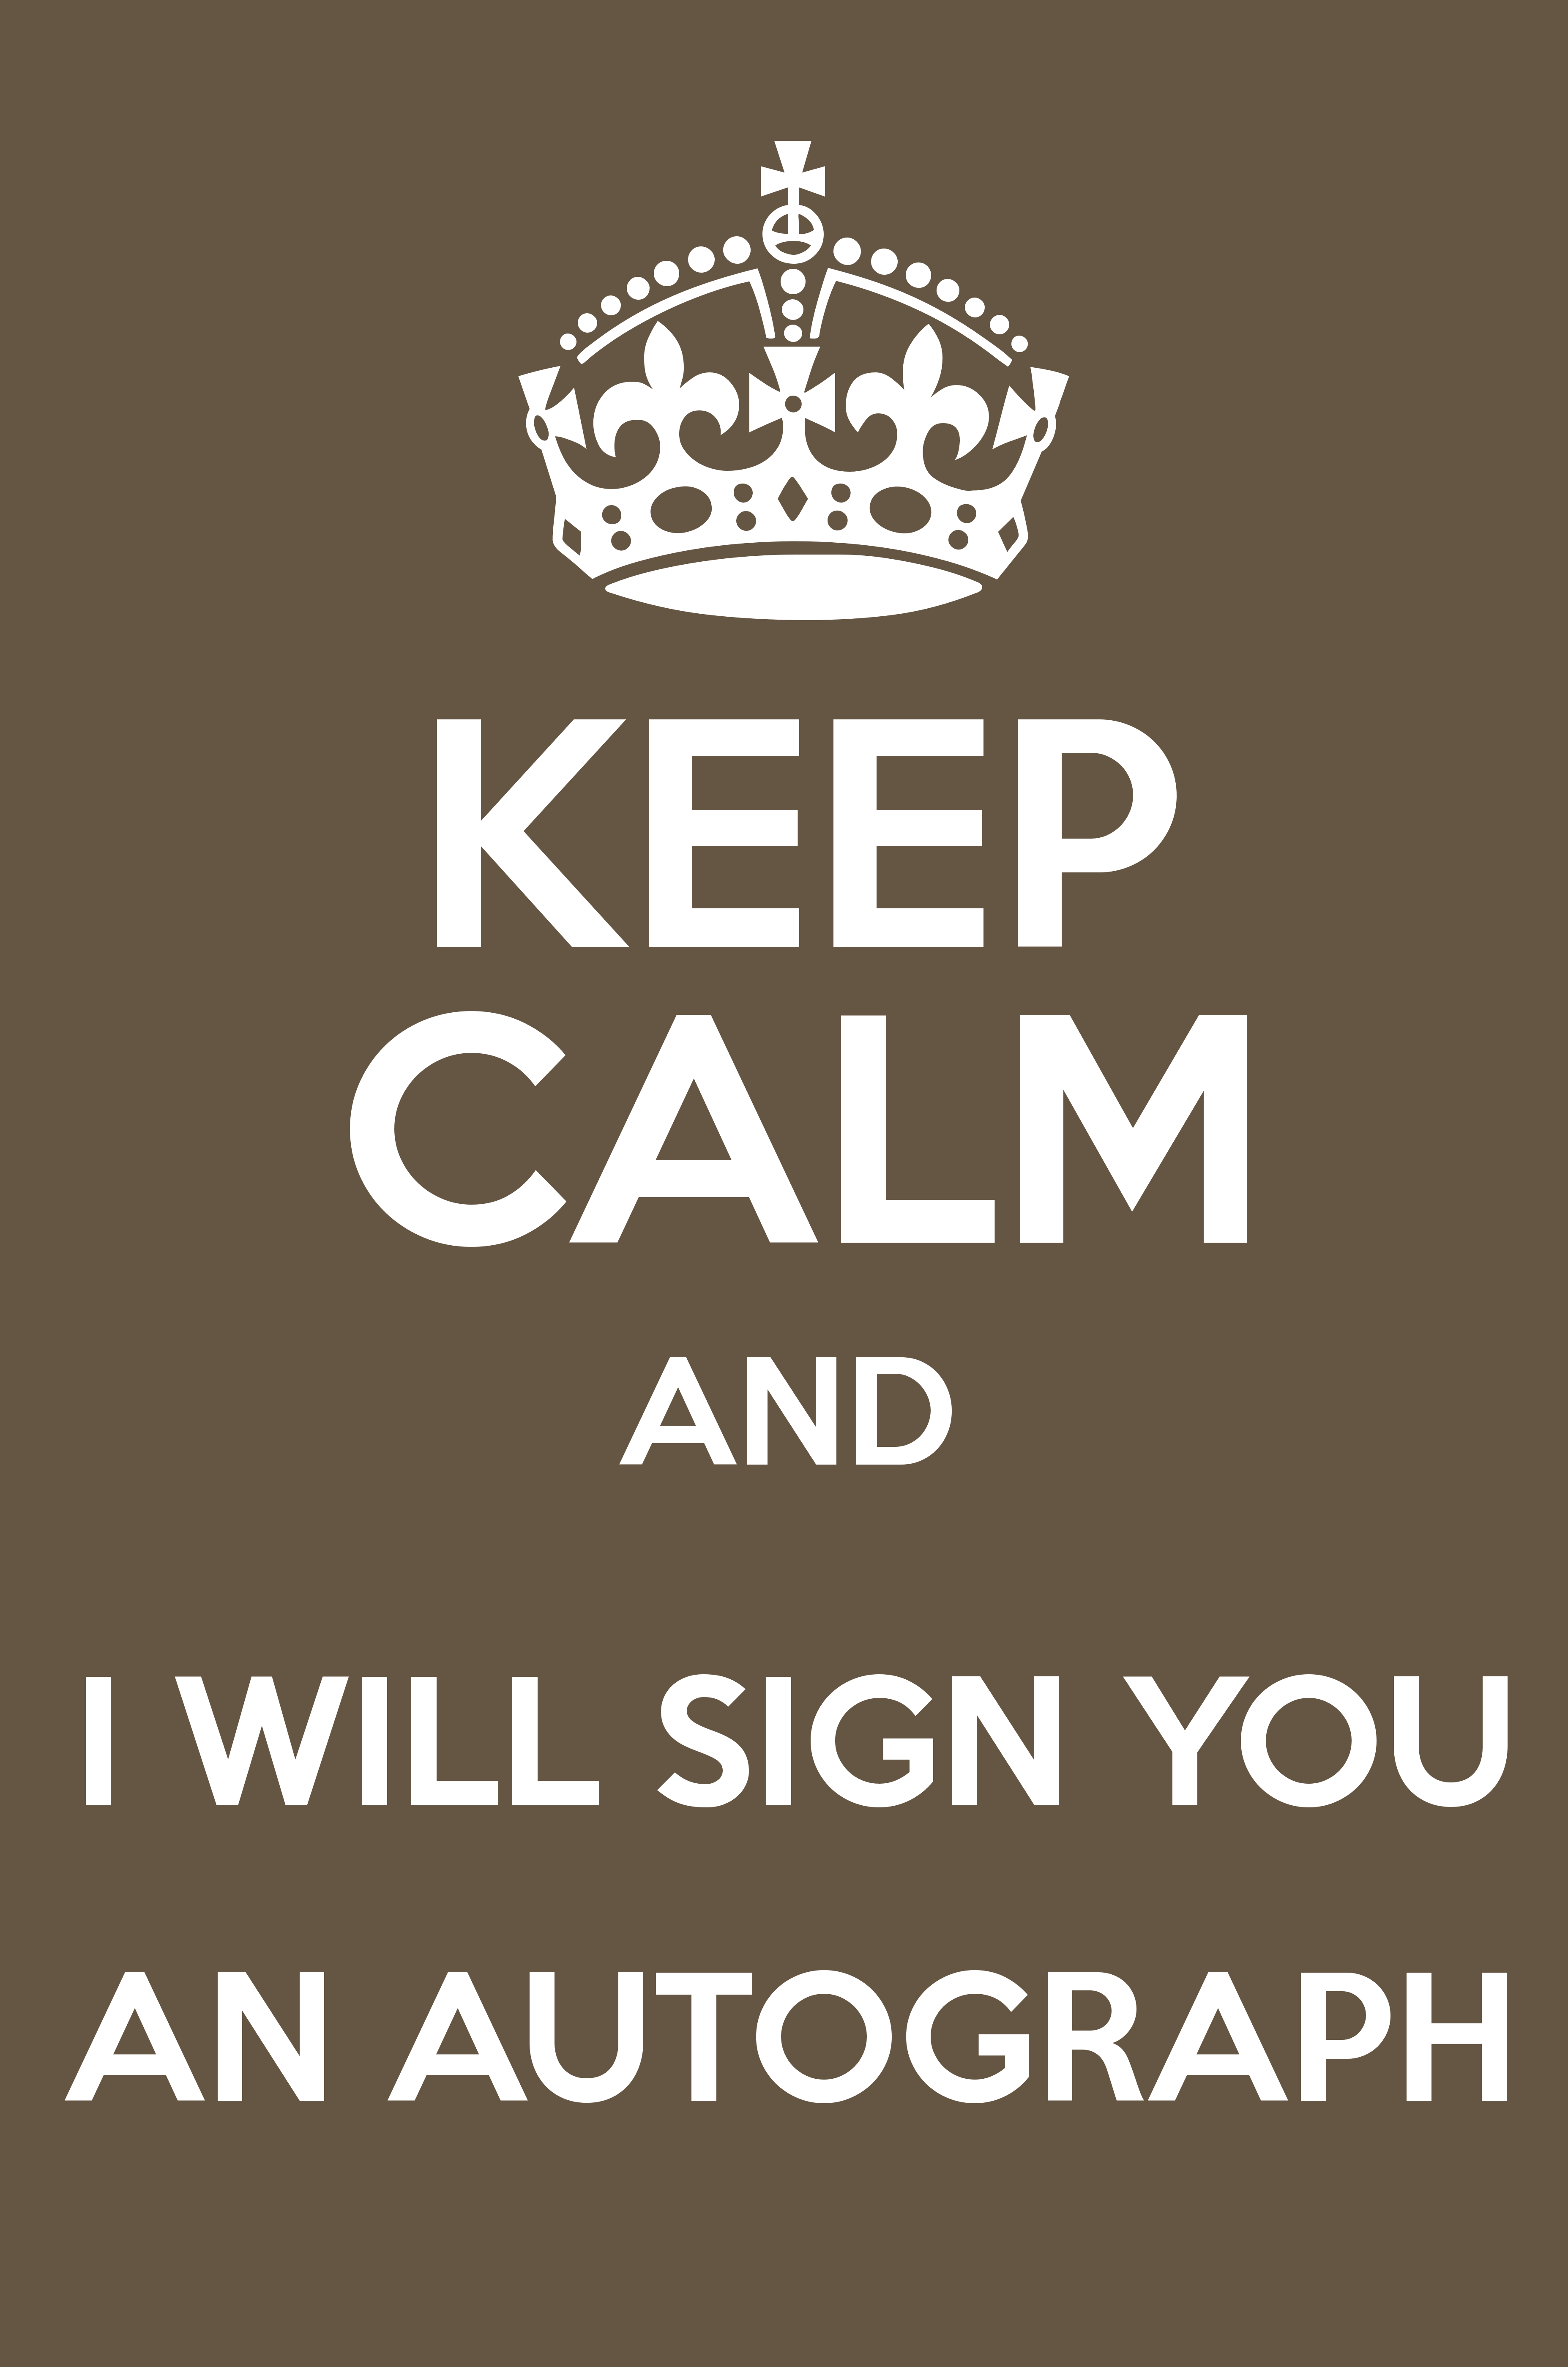 KEEP CALM AND I WILL SIGN YOU AN AUTOGRAPH - Keep Calm and Posters